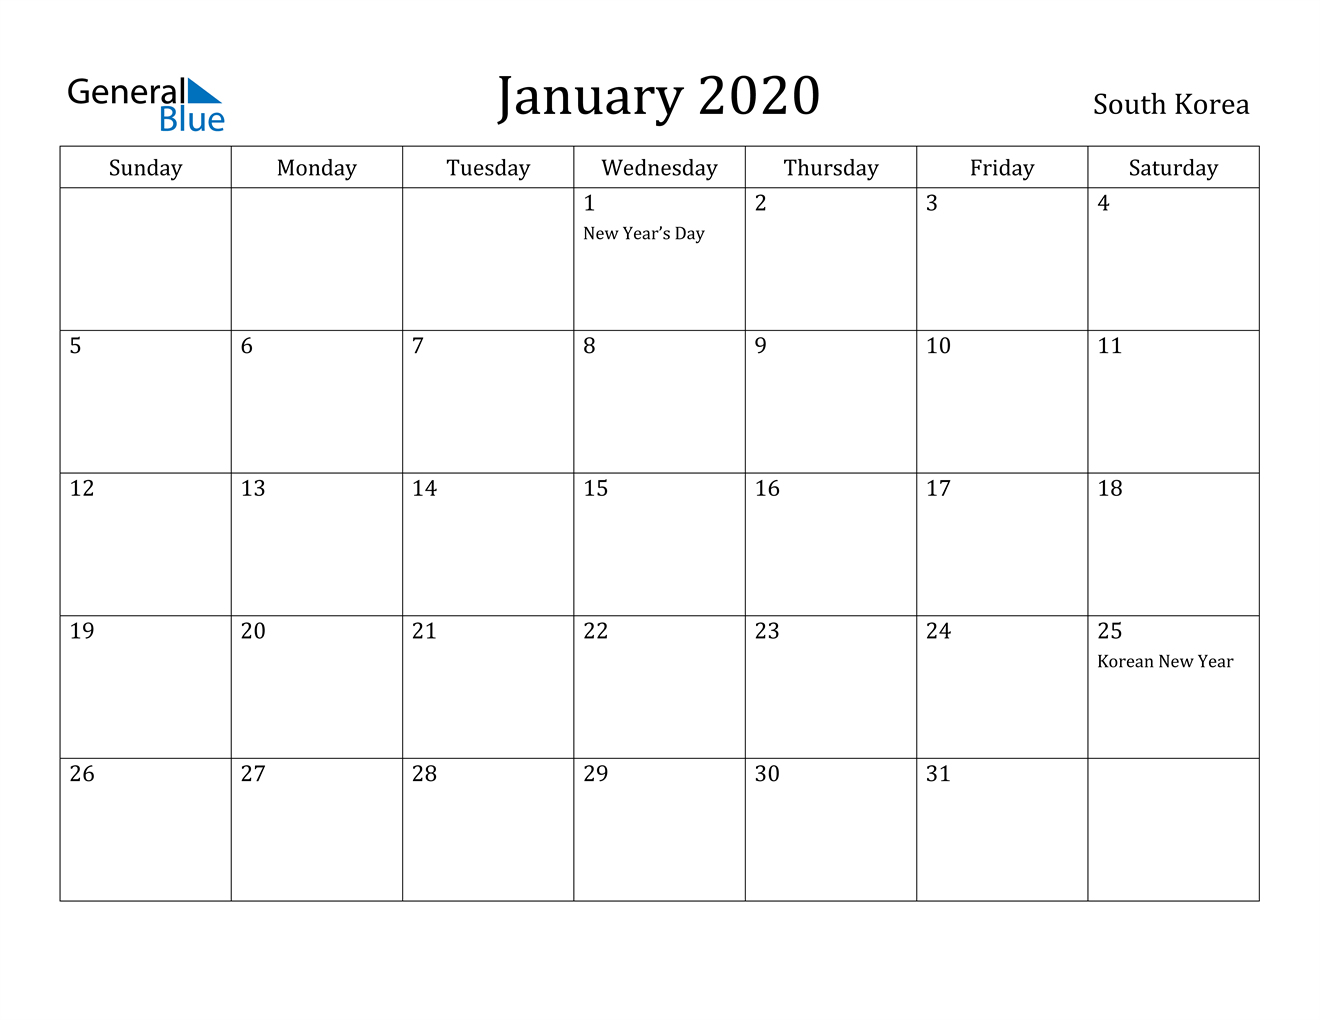 January 2020 Calendar South Korea